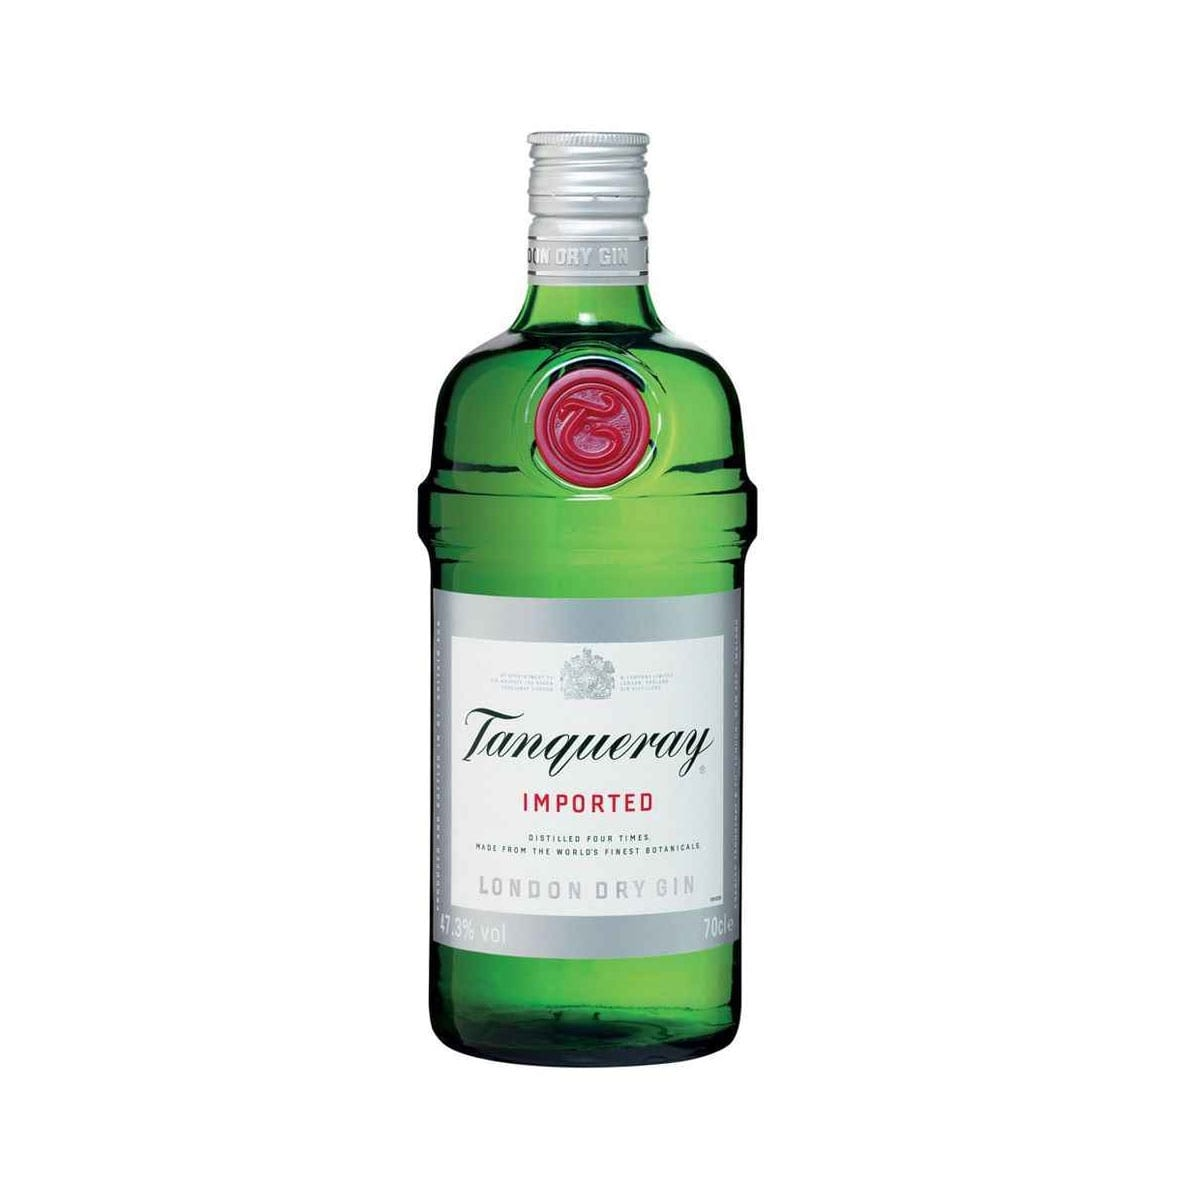 Tanqueray London Dry Gin 2019